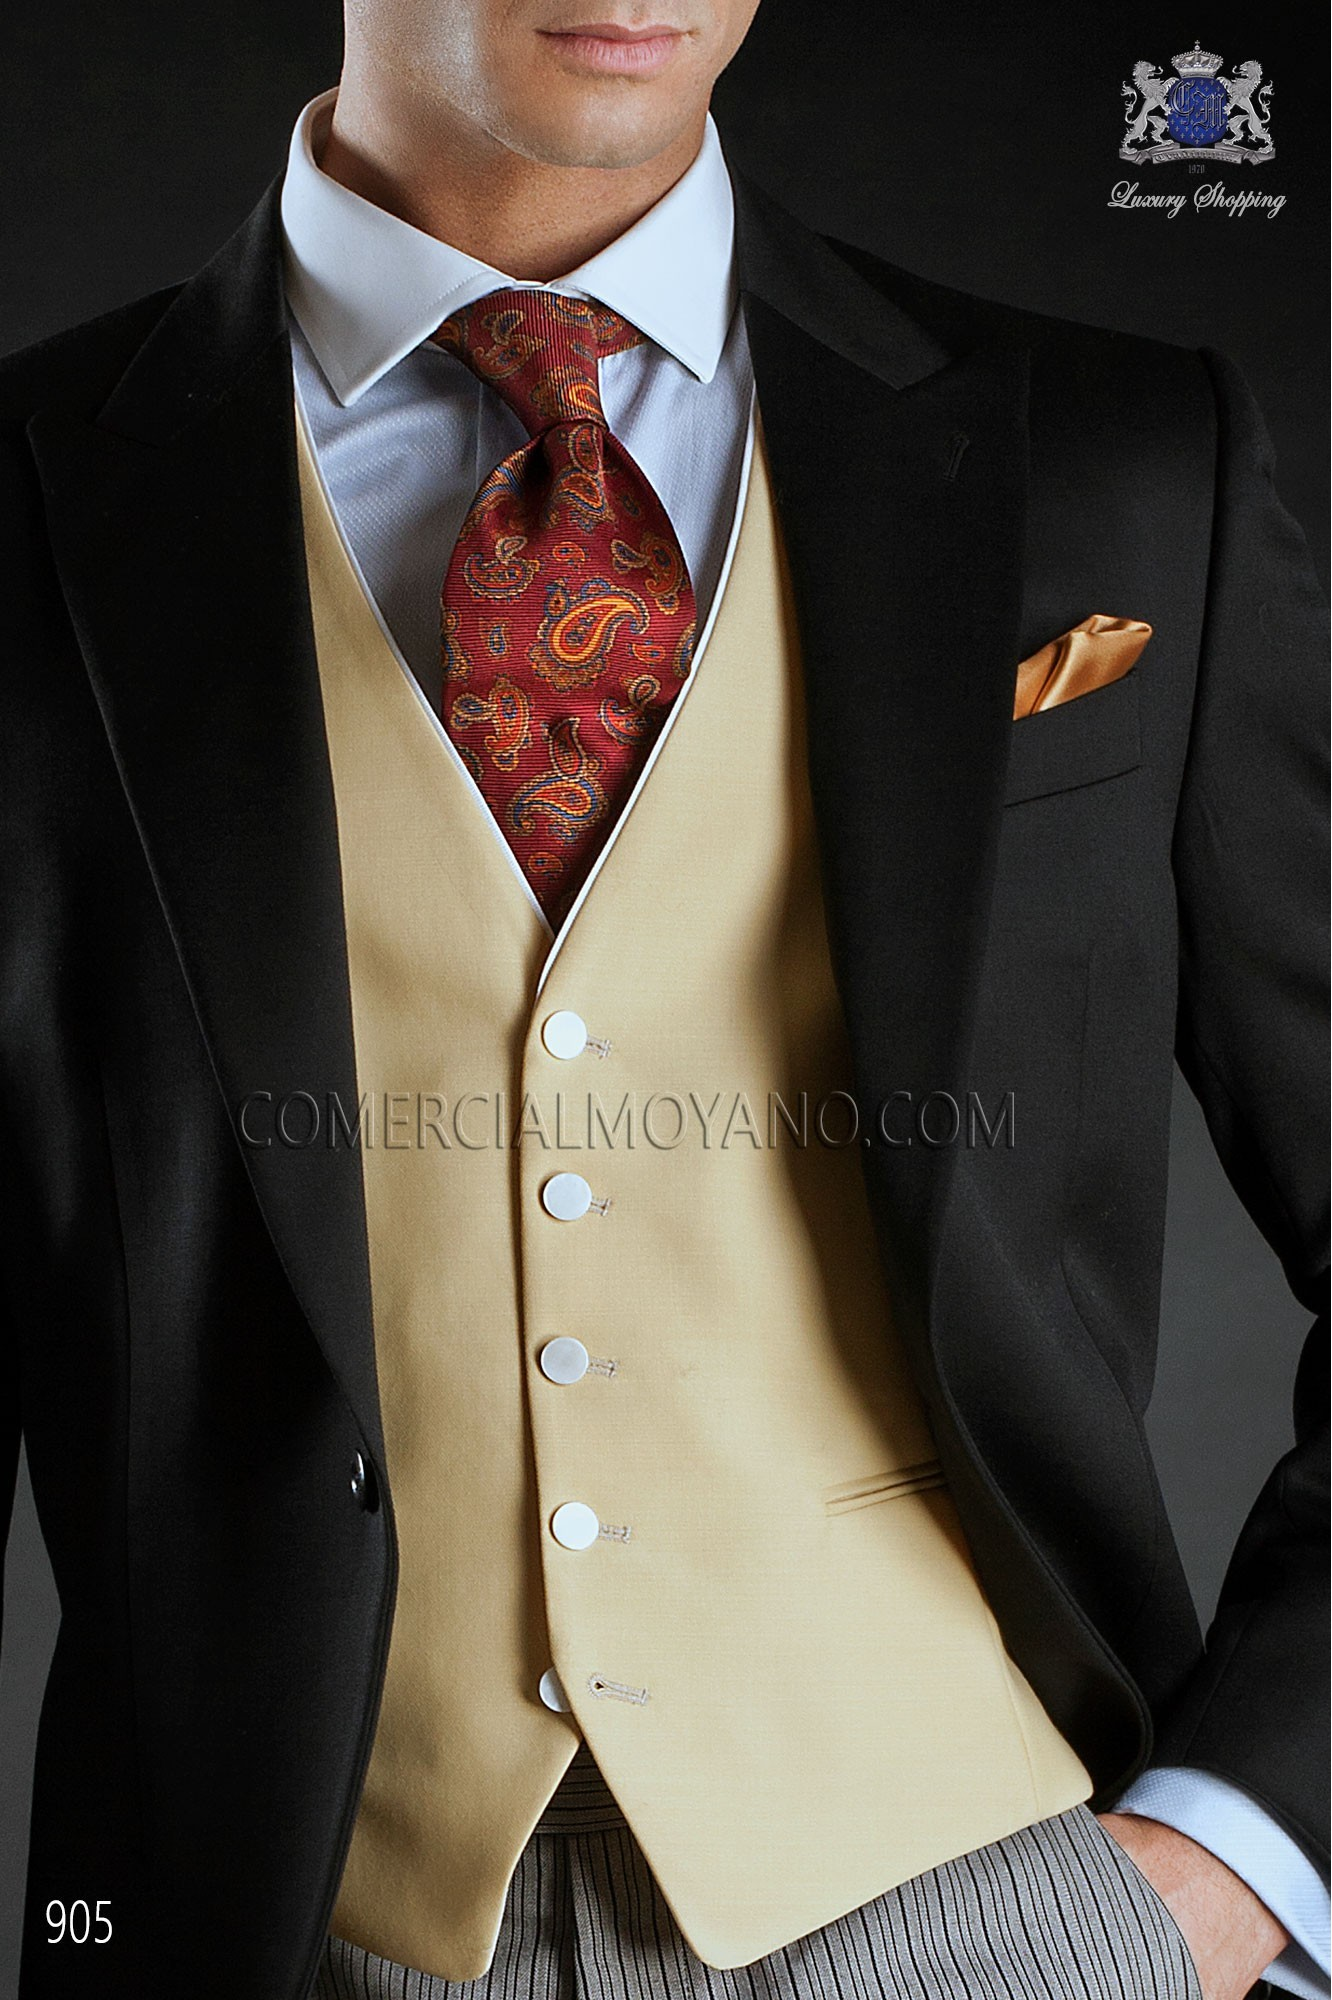 Italian gentleman black men wedding suit, model: 905 Ottavio Nuccio Gala 2017 Gentleman Collection